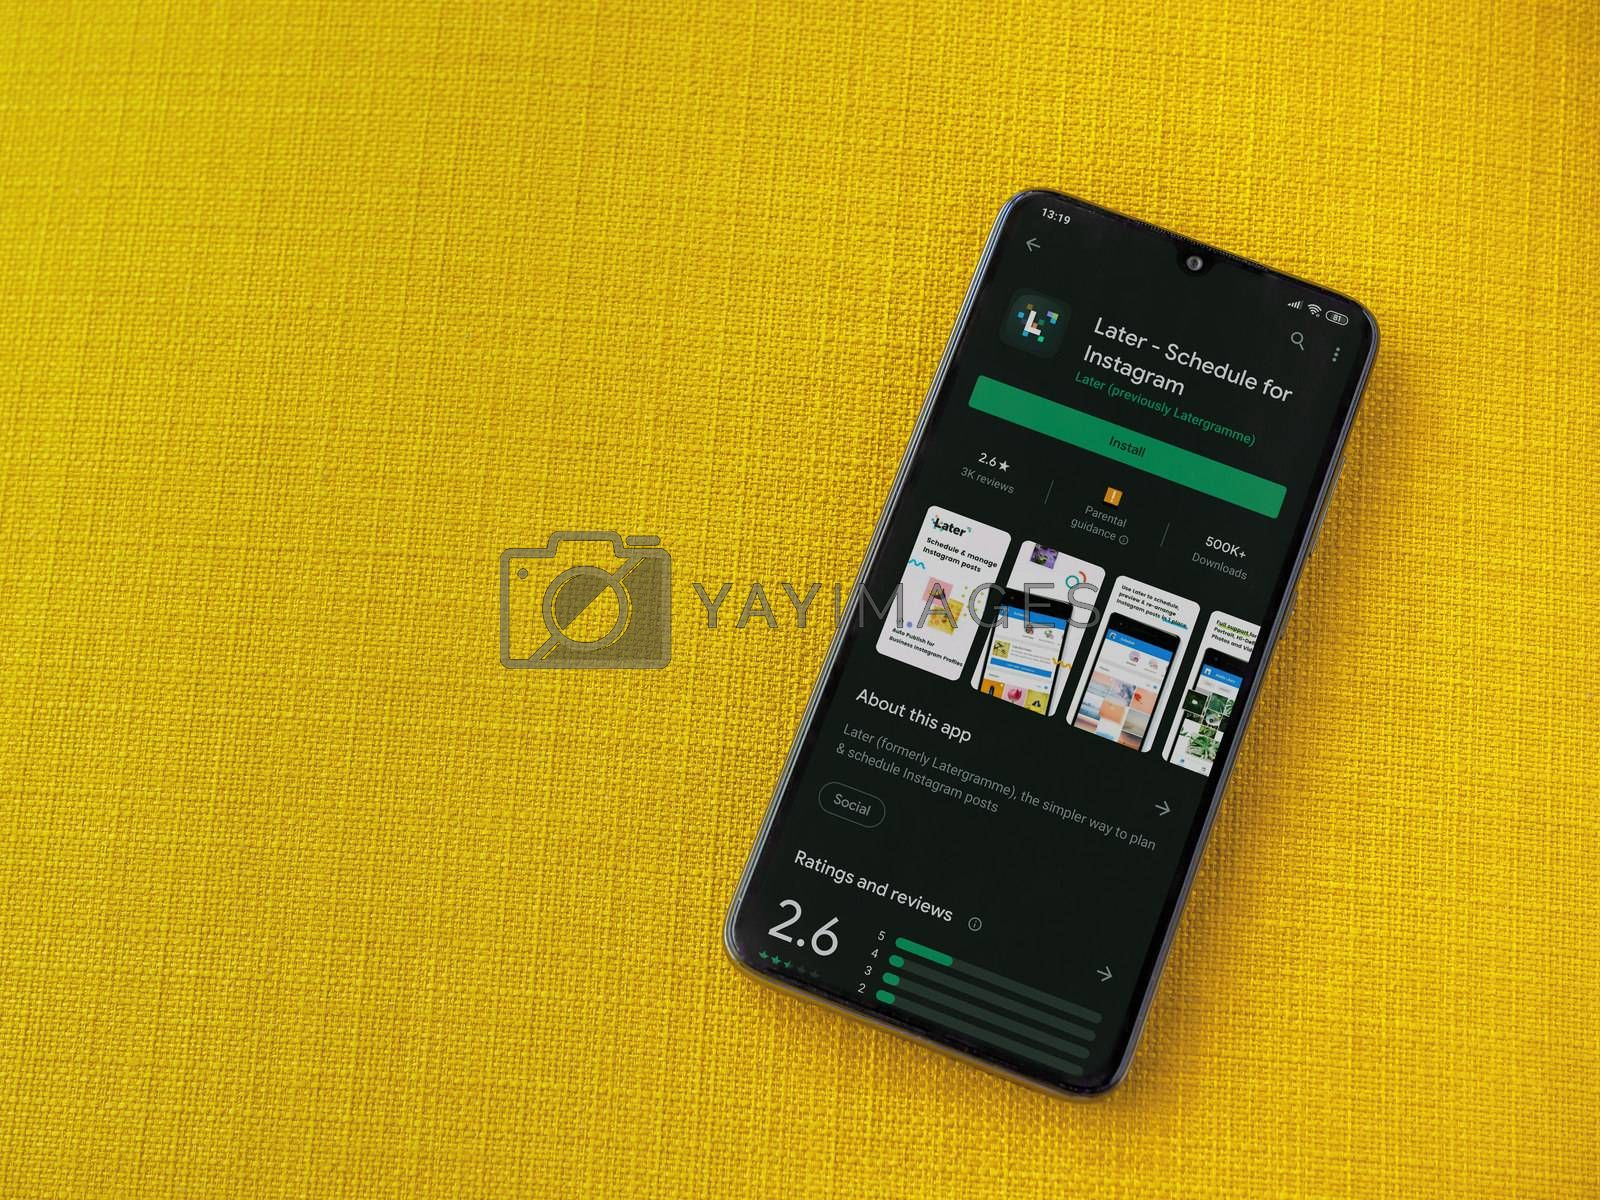 Lod, Israel - July 8, 2020: Later app play store page on the display of a black mobile smartphone on a yellow fabric background. Top view flat lay with copy space.